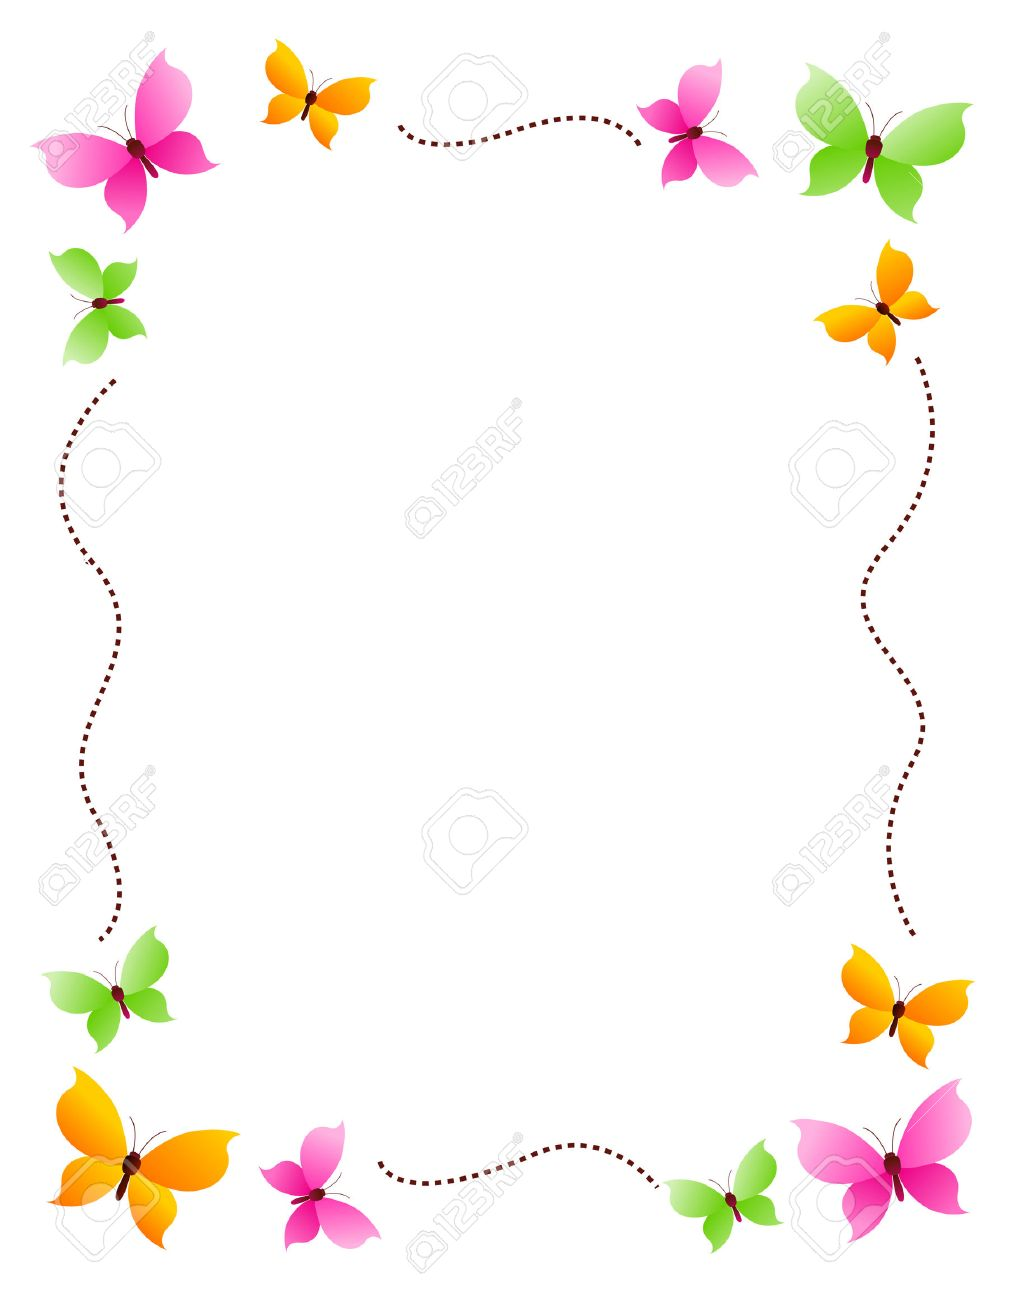 butterfly frame with colorful butterflies on four corners stock vector 38550680